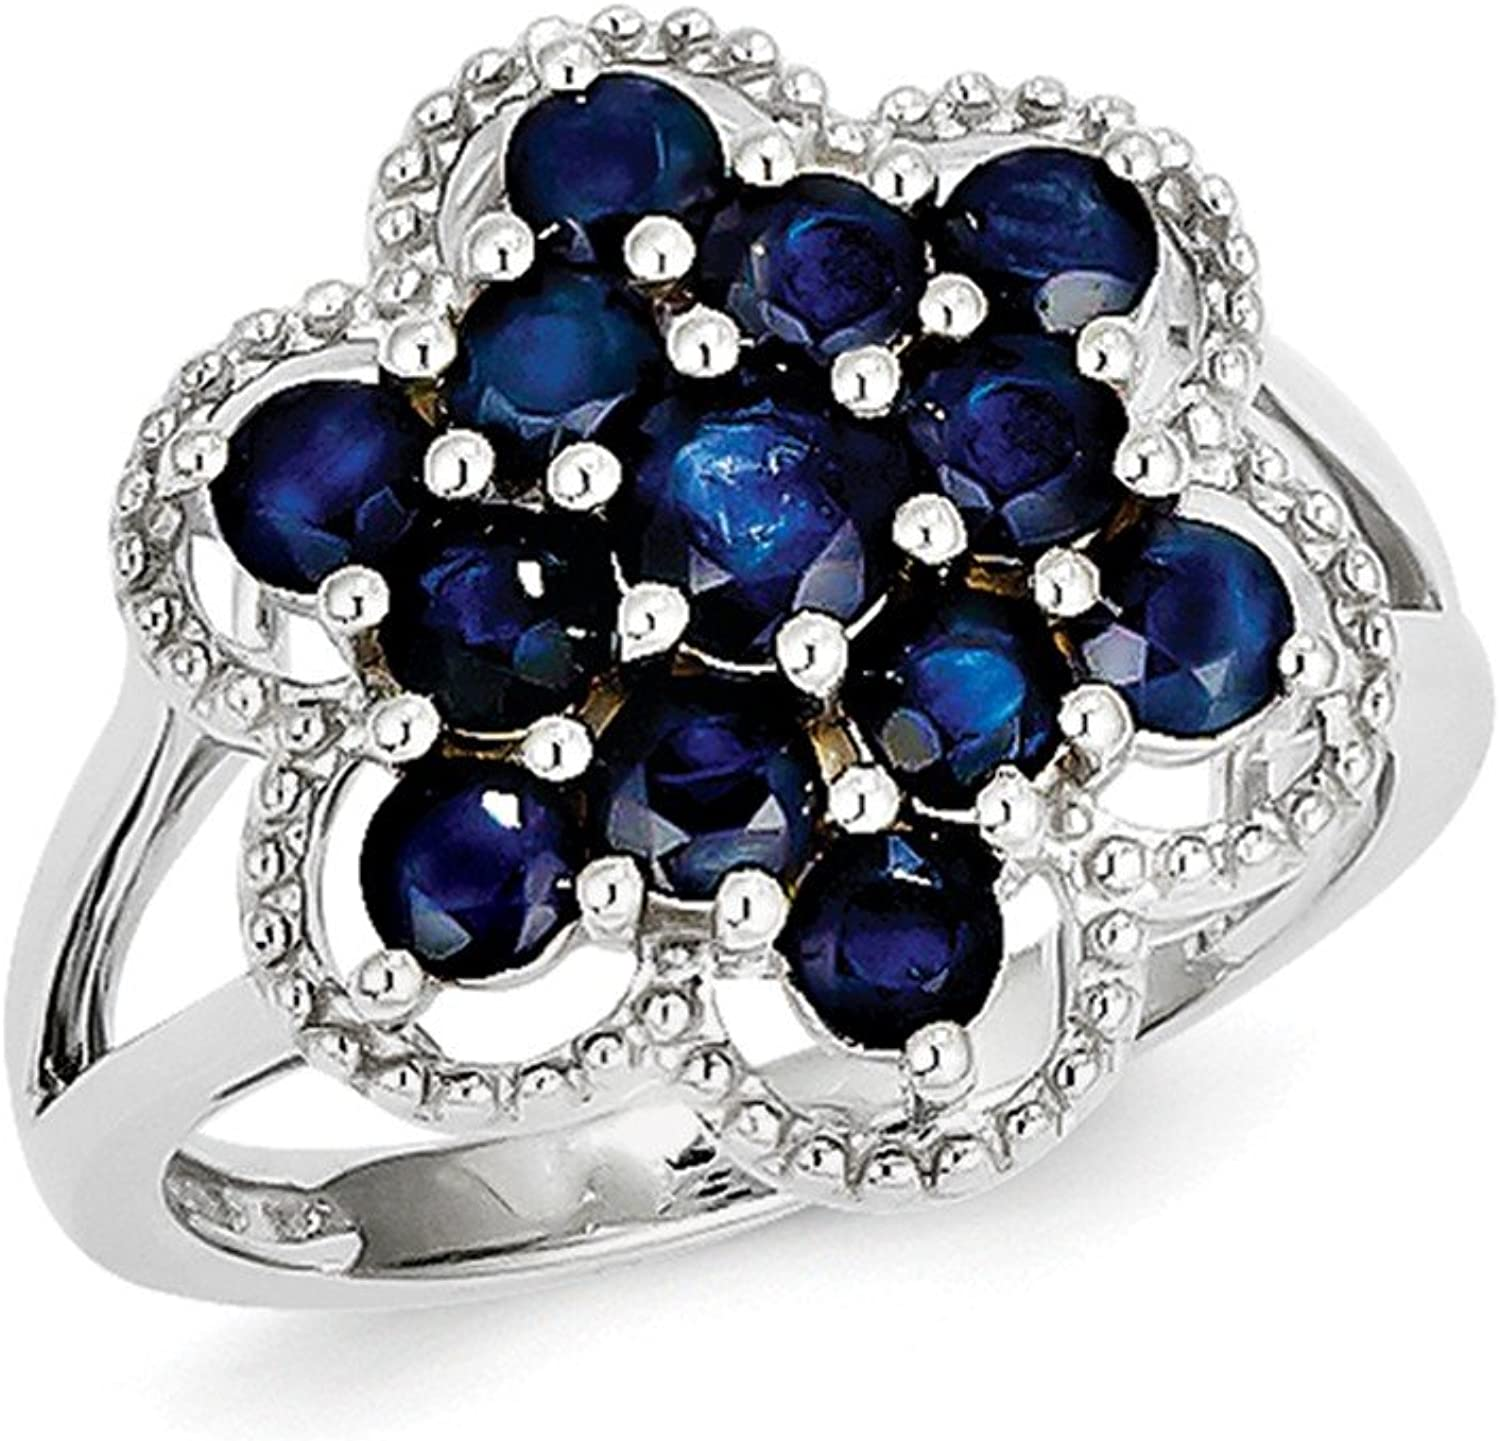 925 Sterling Silver Rhodium Plated bluee Sapphire Flower Ring